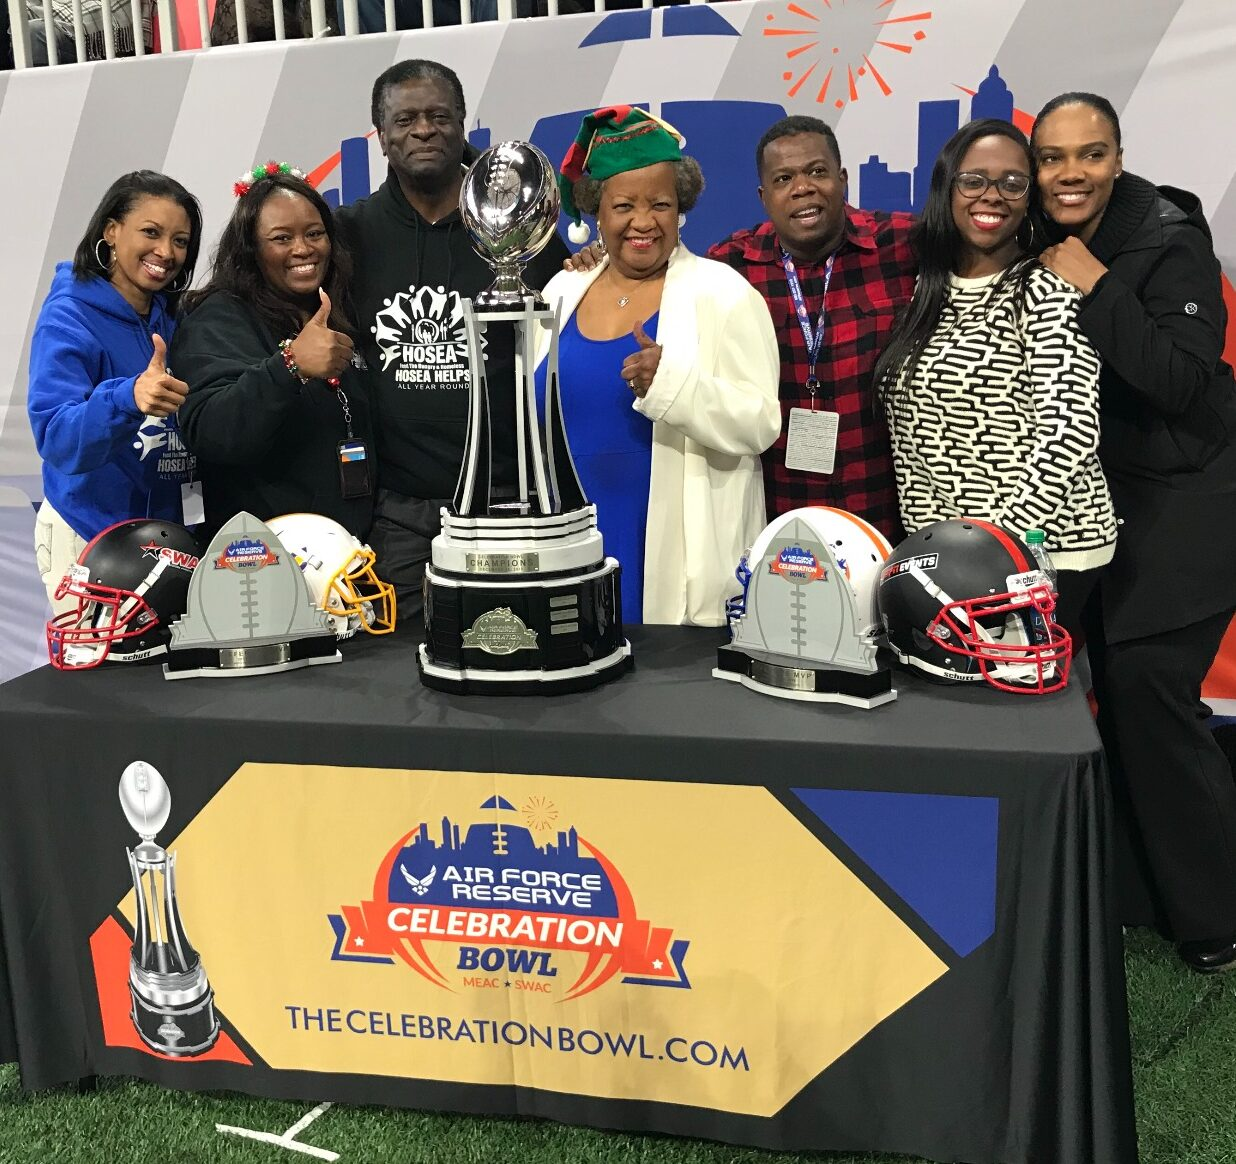 HOSEA HELPS NAMED OFFICIAL CHARITABLE PARTNER OF THE CELEBRATION BOWL